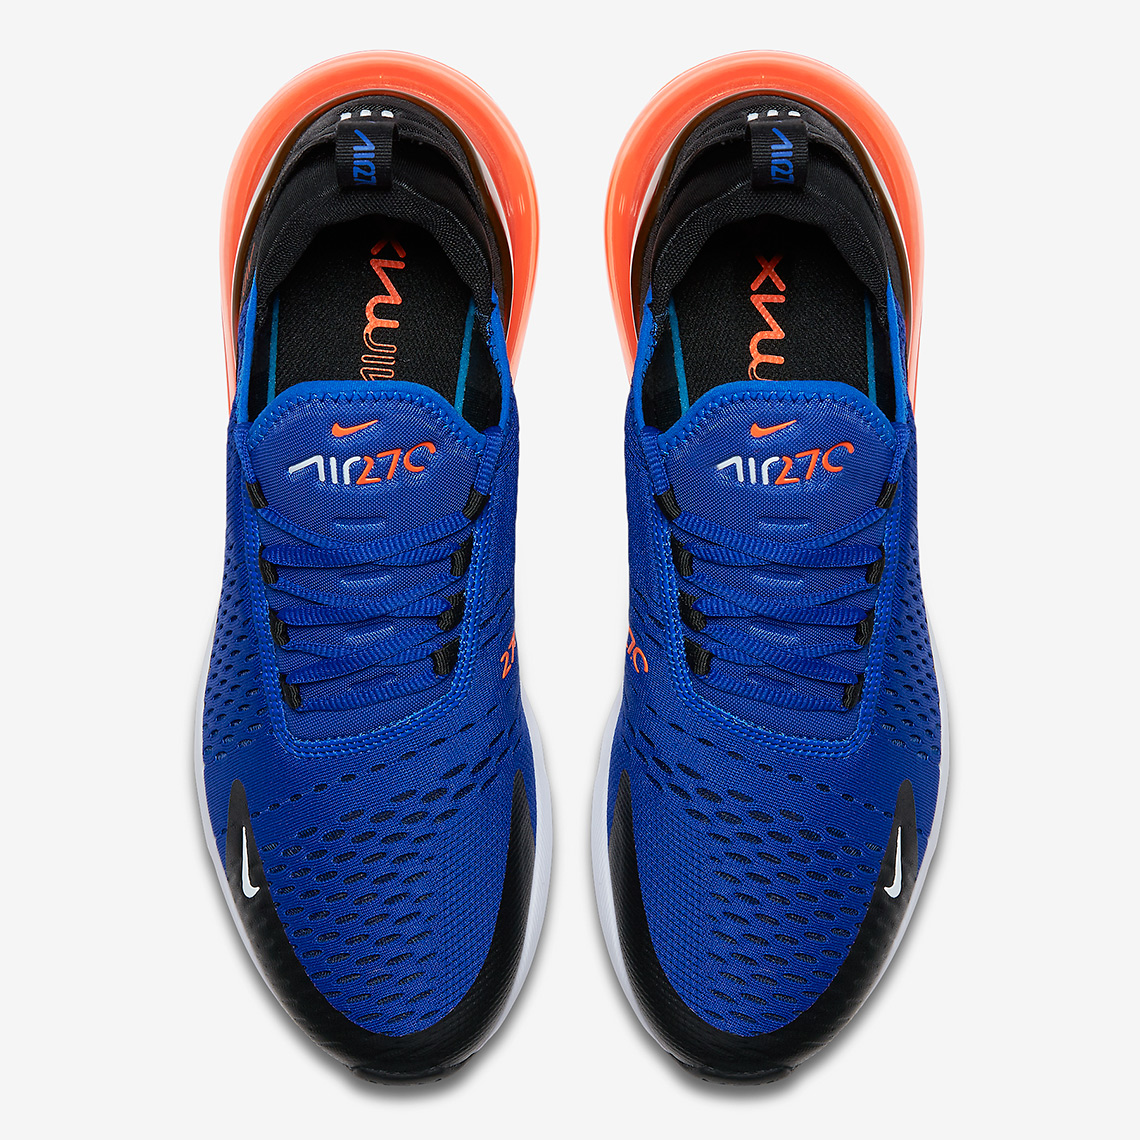 4e4a7dfb53 Nike Air Max 270 Racer Blue Hyper Crimson AH8050-401 | SneakerNews.com